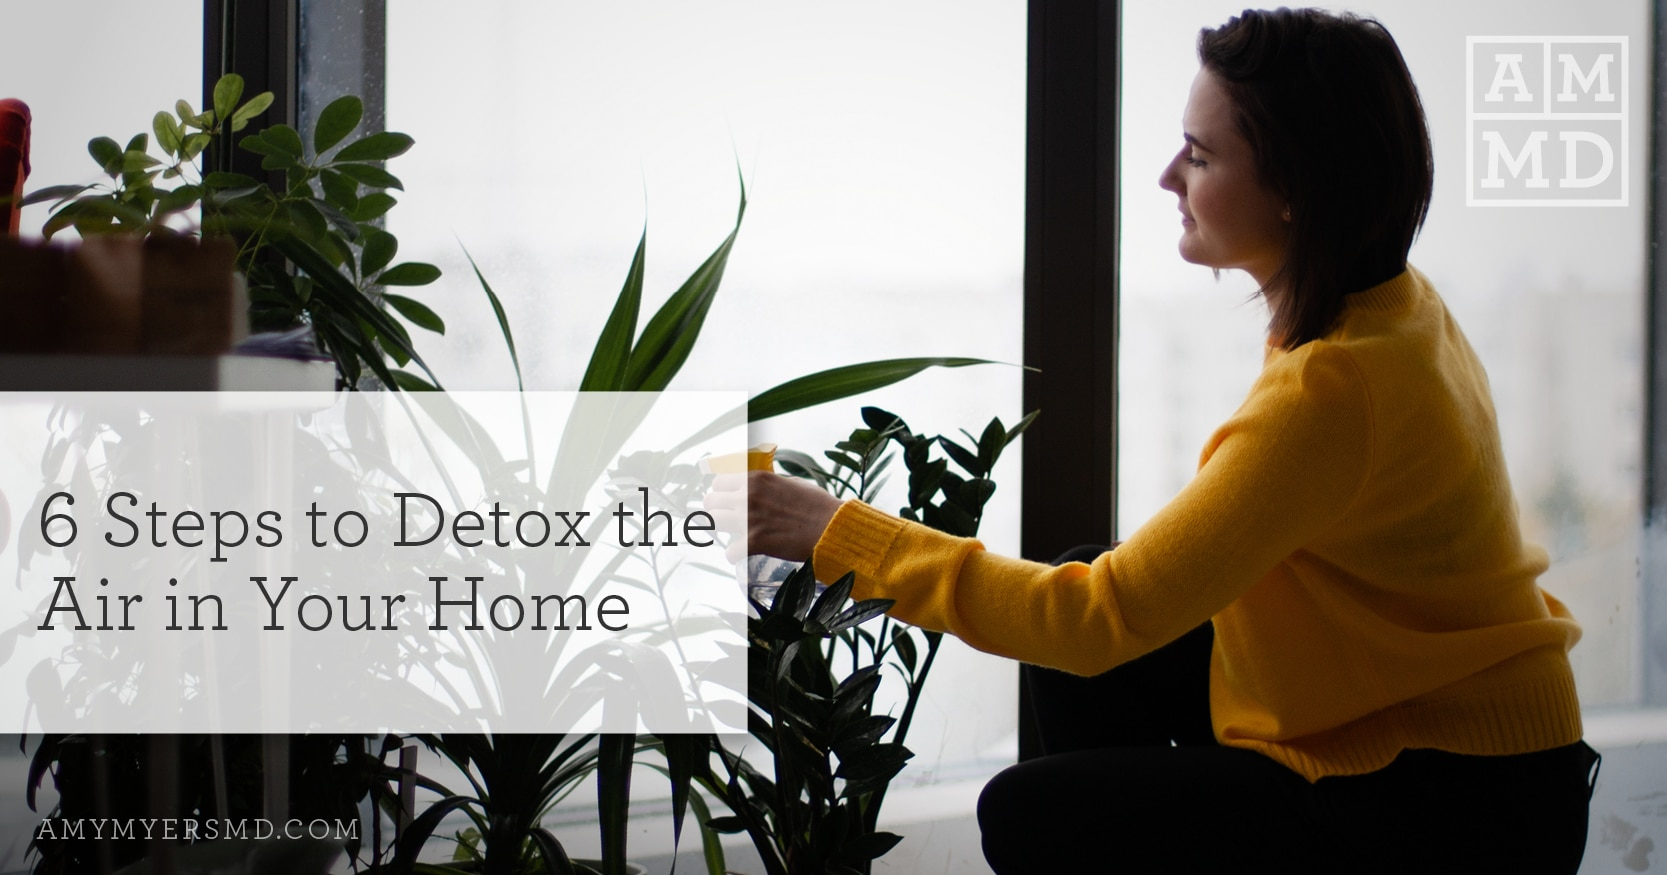 6 Steps To Detox and Purify The Air In Your Home - A Woman Watering Her Plants - Featured Image - Amy Myers MD